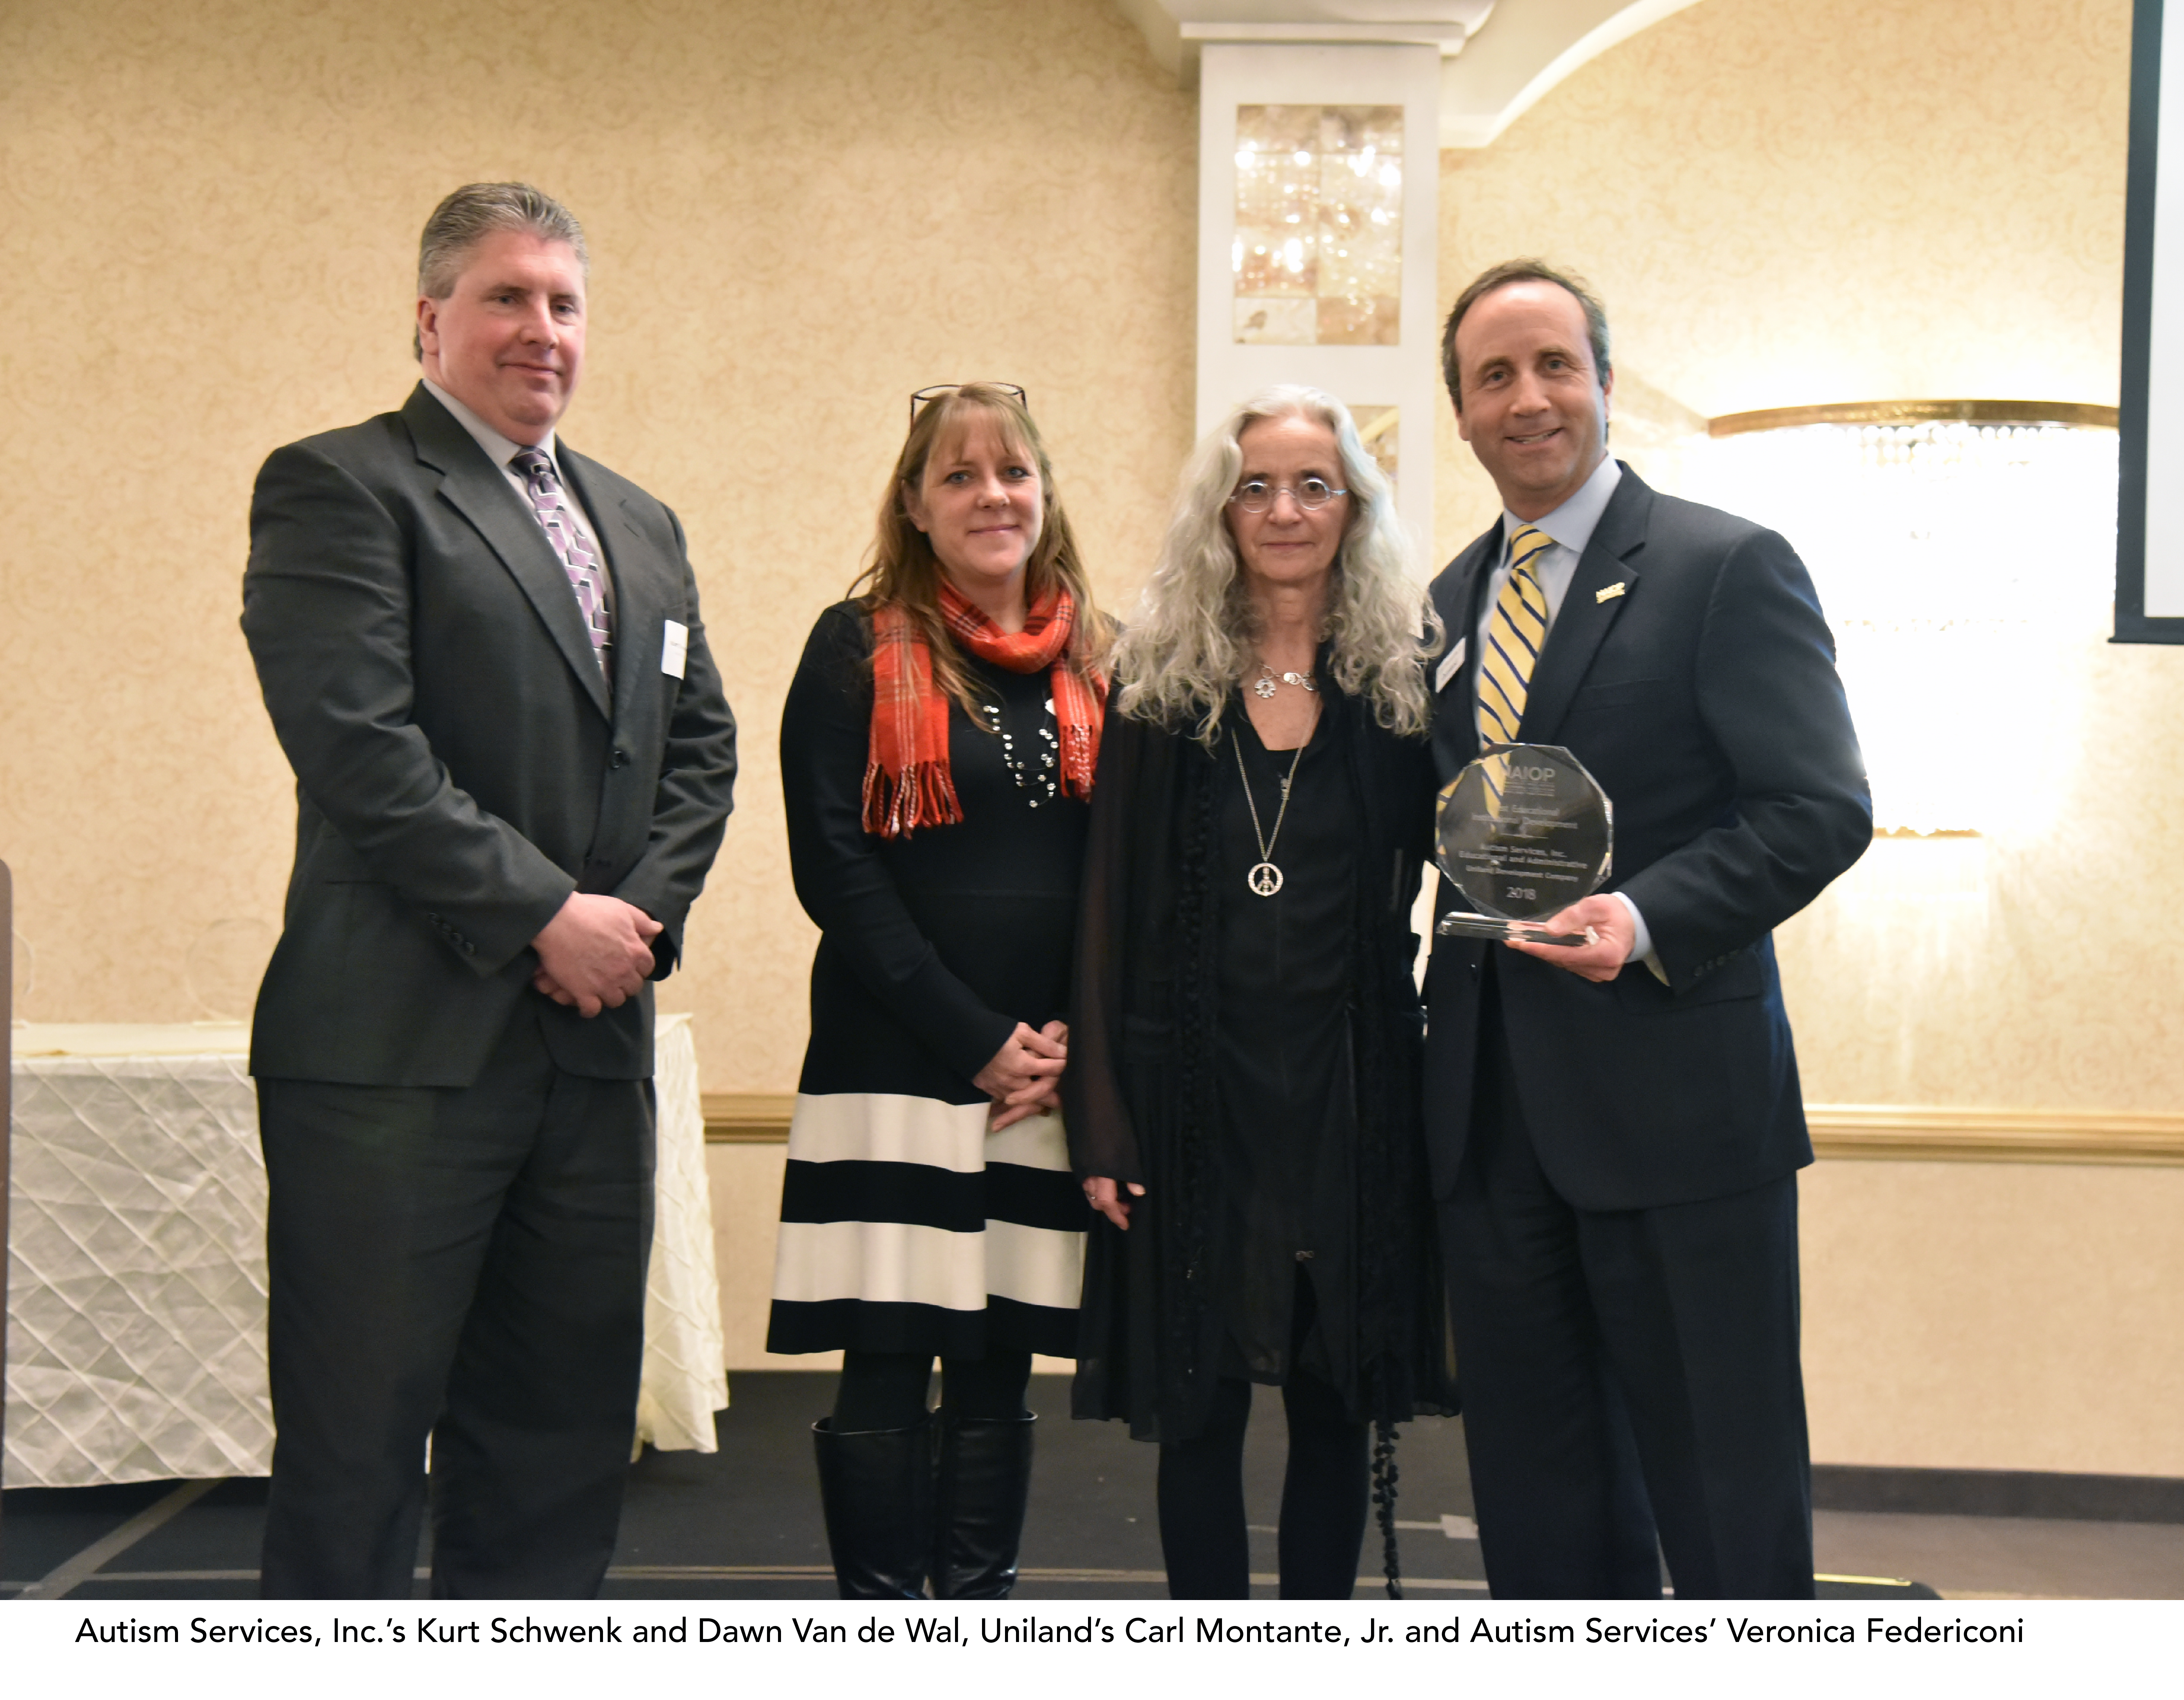 2019 National Association of Industrial and Office Properties Upstate New York Chapter Awards Dinner - Autism Services, Inc.